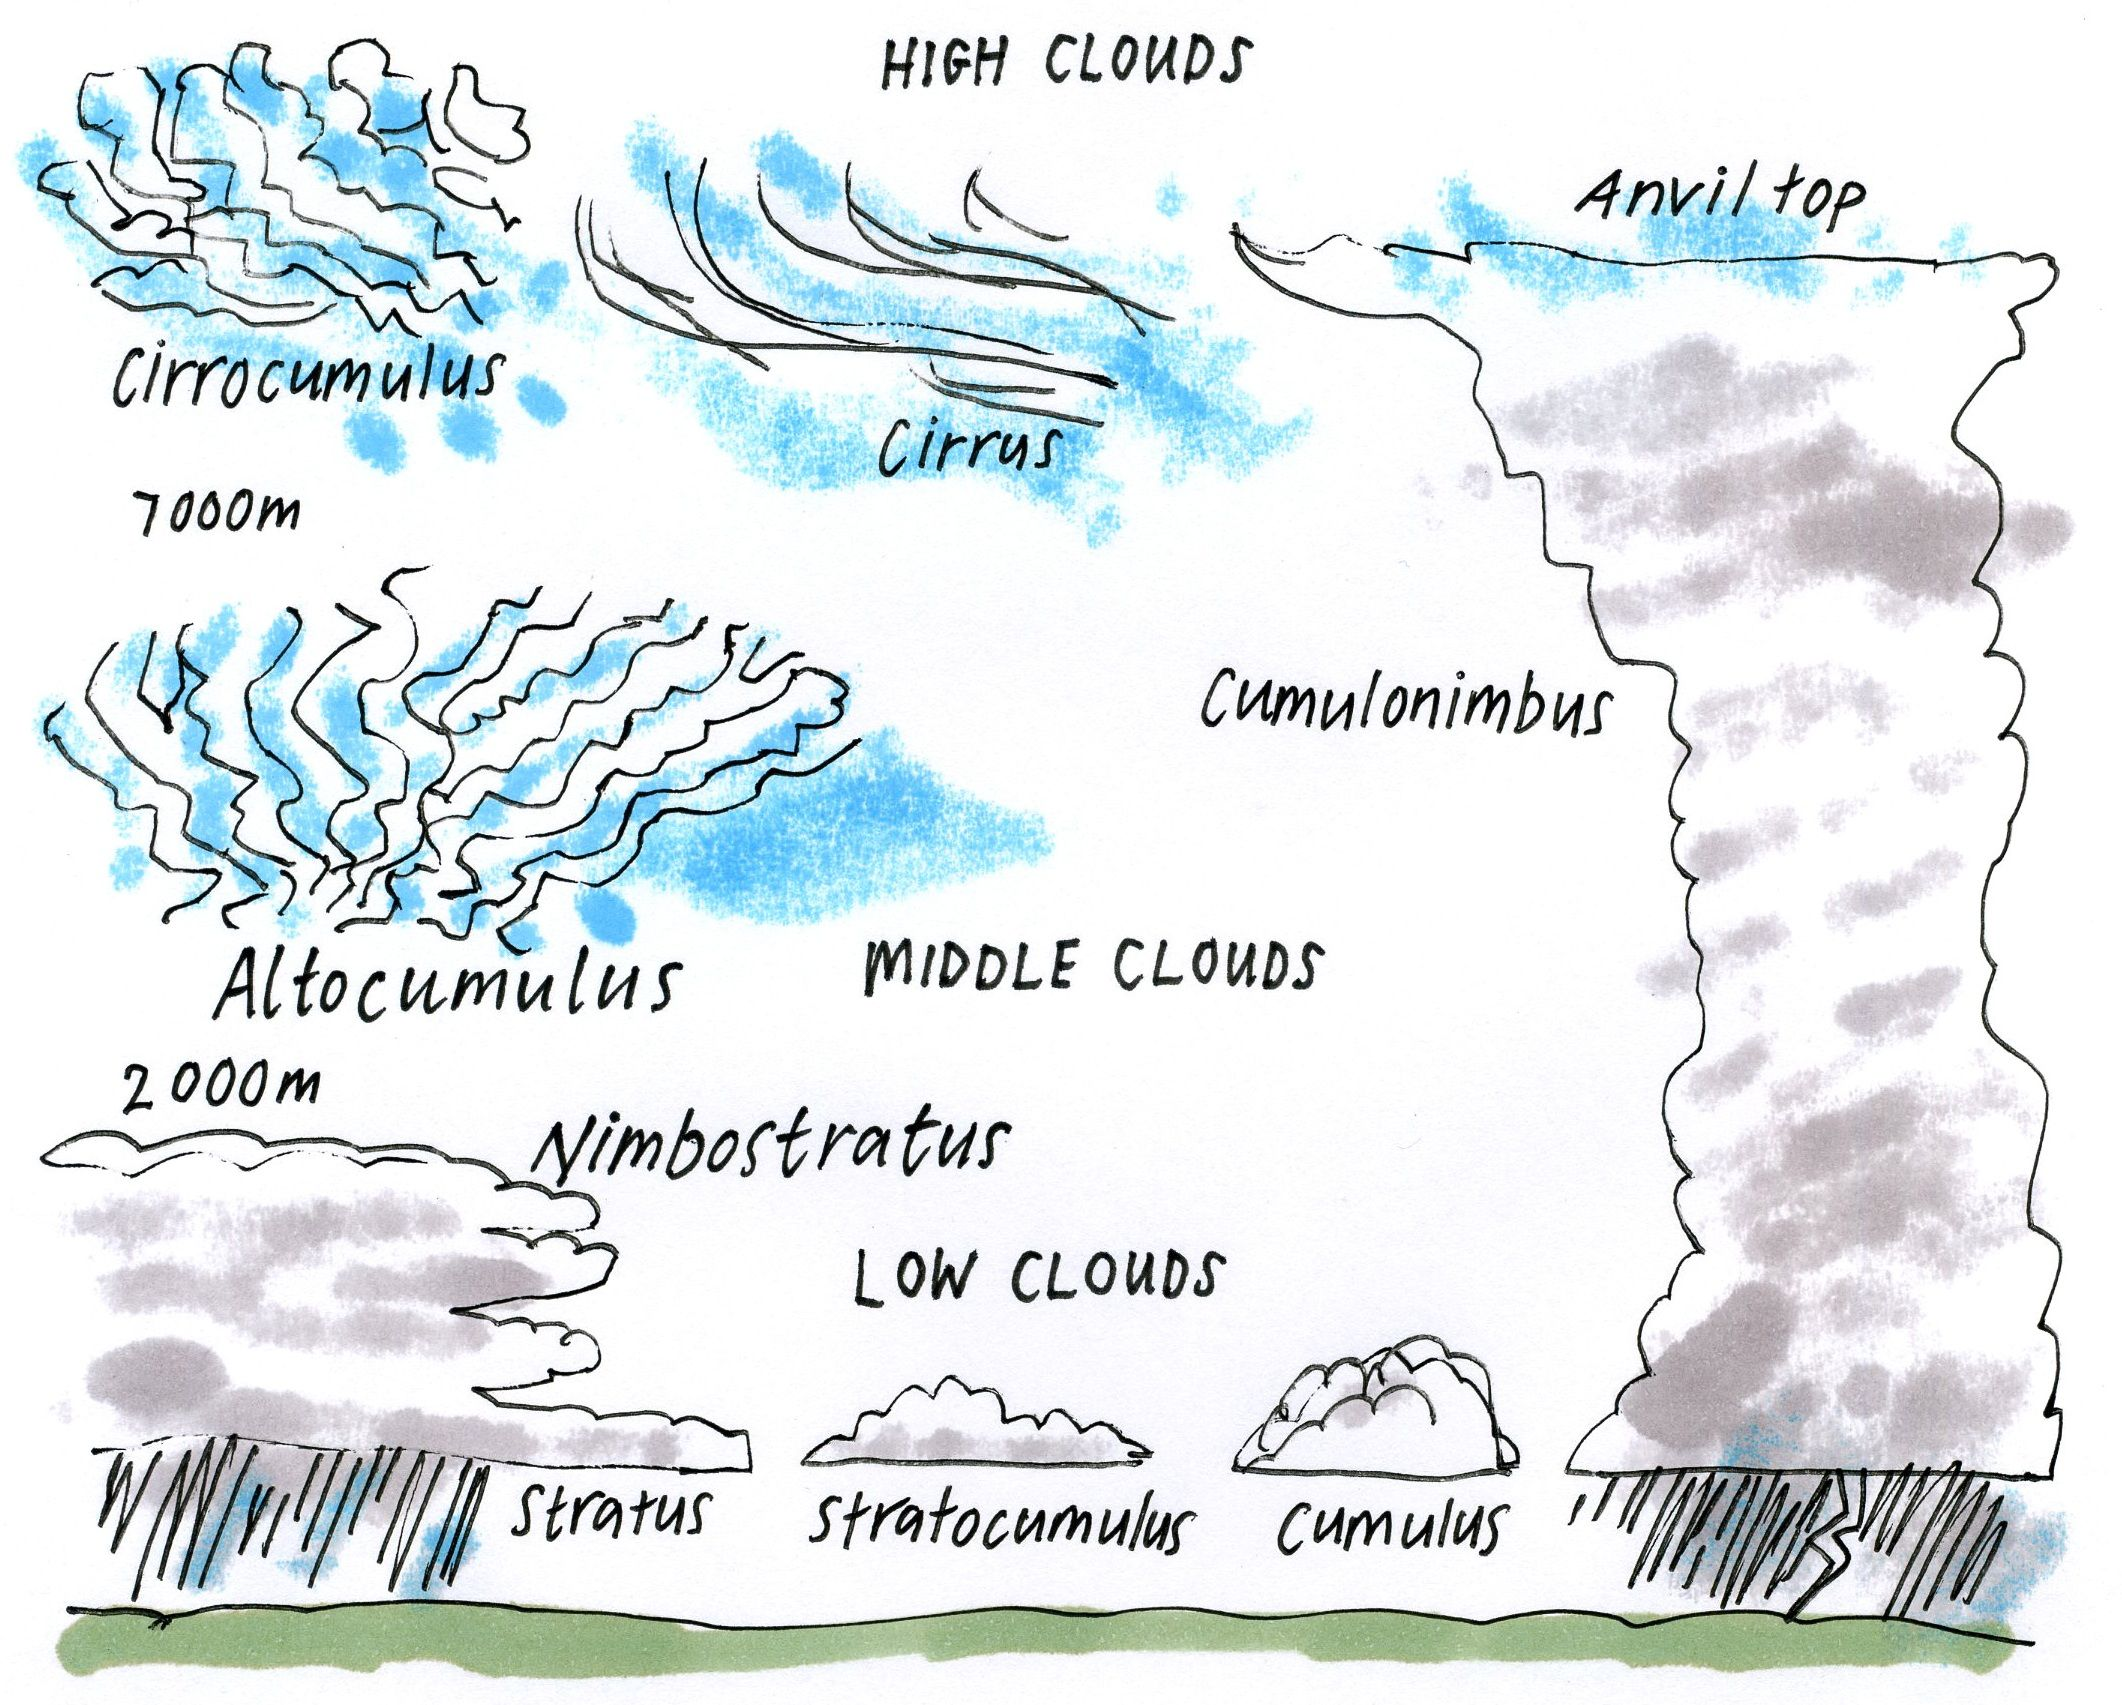 hight resolution of earth layers worksheet   ... middlelayers of earthearth atmospherethe sun  layers of identification   Clouds